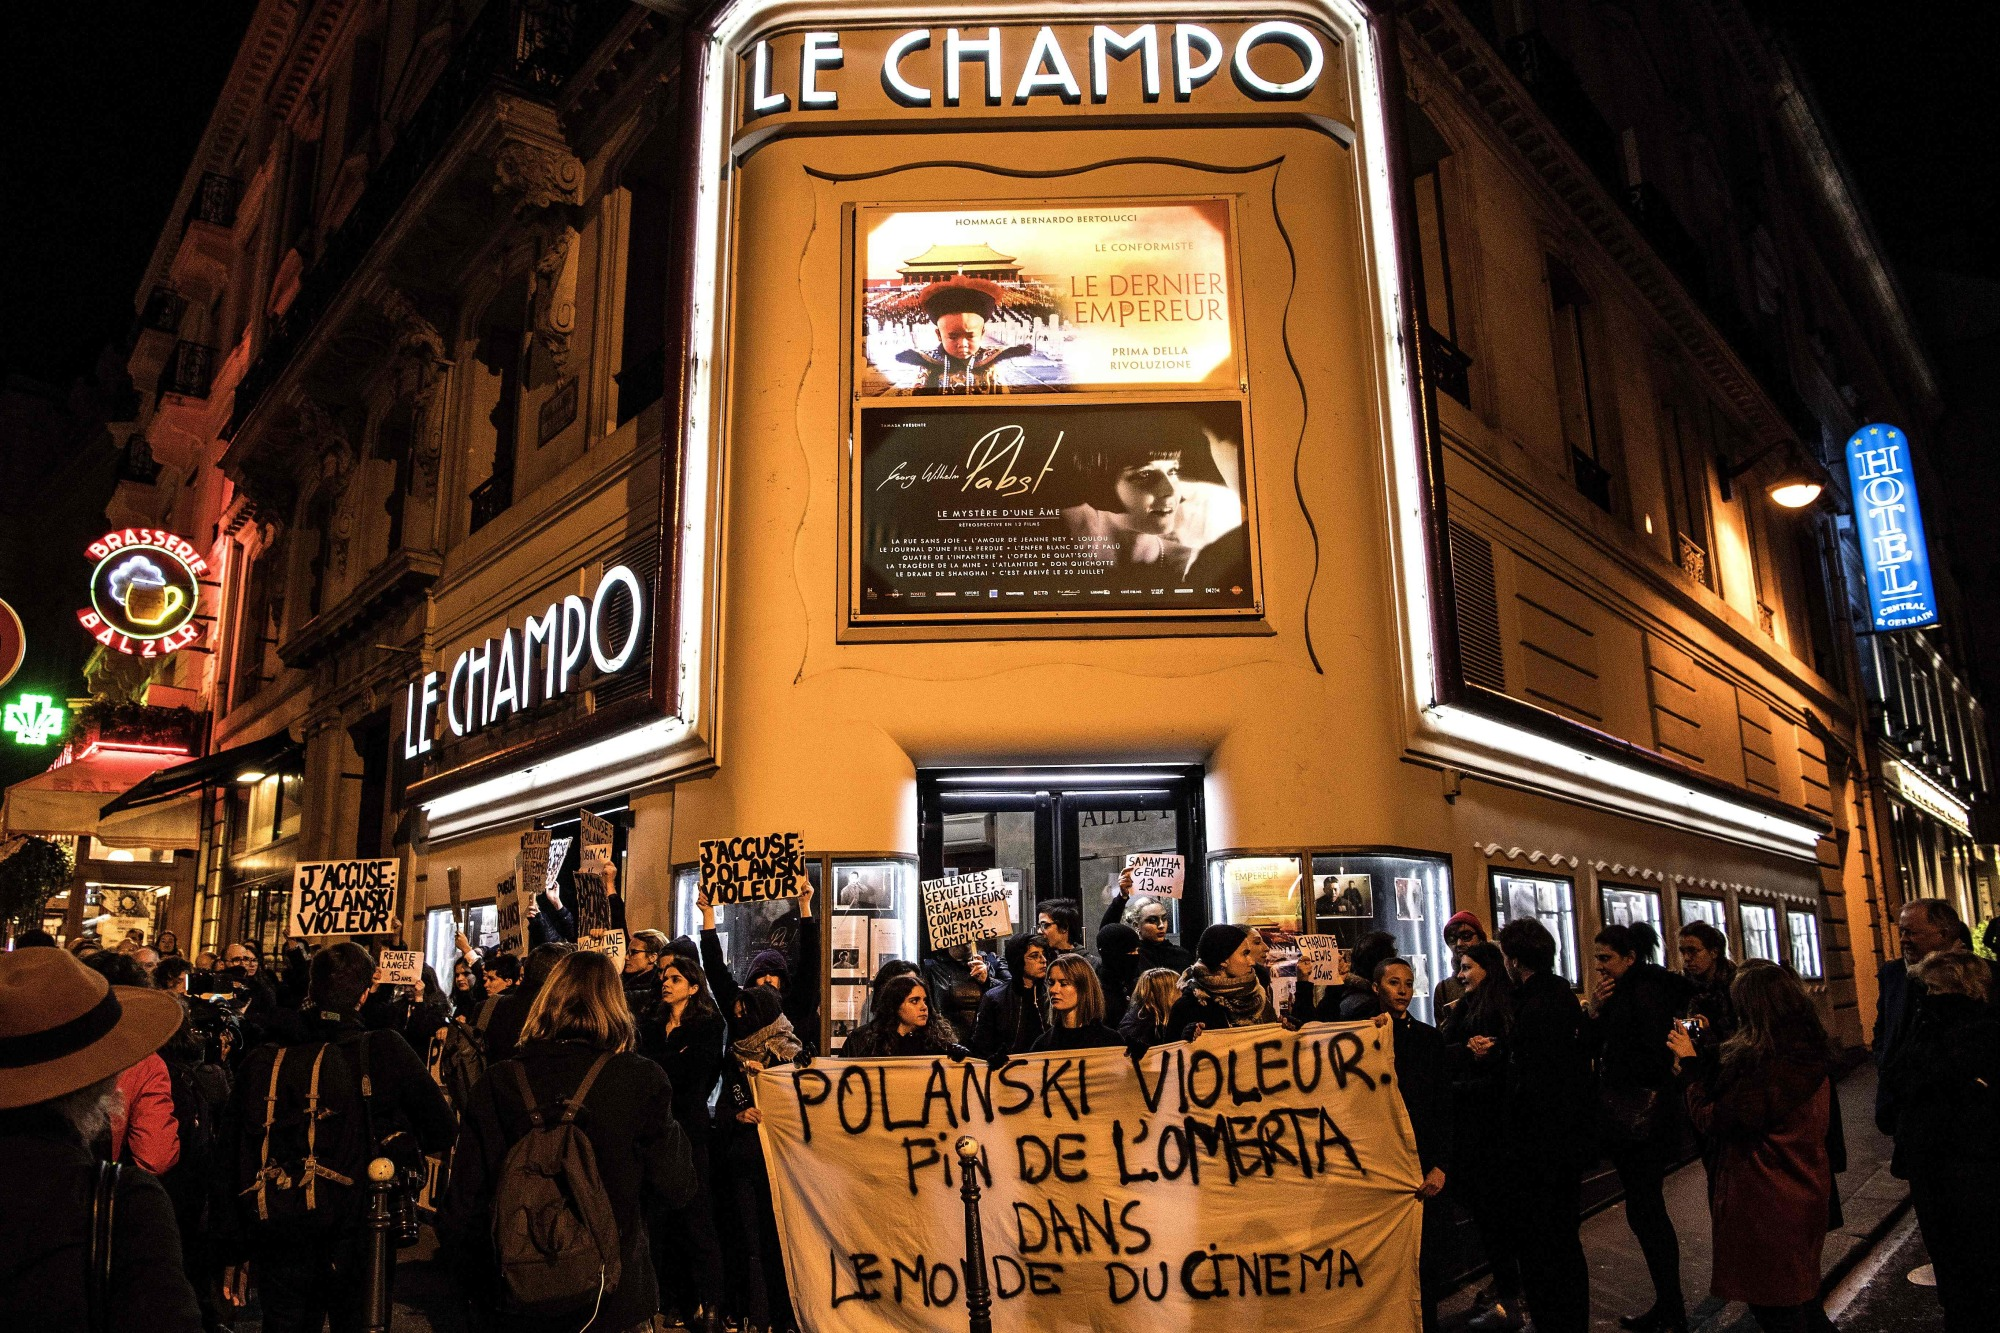 Demonstrators hold banners reading 'Polanski rapist, end of the omerta in the world of cinema' during a protest against French-Polish film director Roman Polanski outside the Champo cinema hall in Paris on Tuesday. Interviews to promote Polanski's new film 'An Officer and a Spy' have been either canceled or pulled after a new rape allegation against the controversial director on Nov. 8. | AFP-JIJI